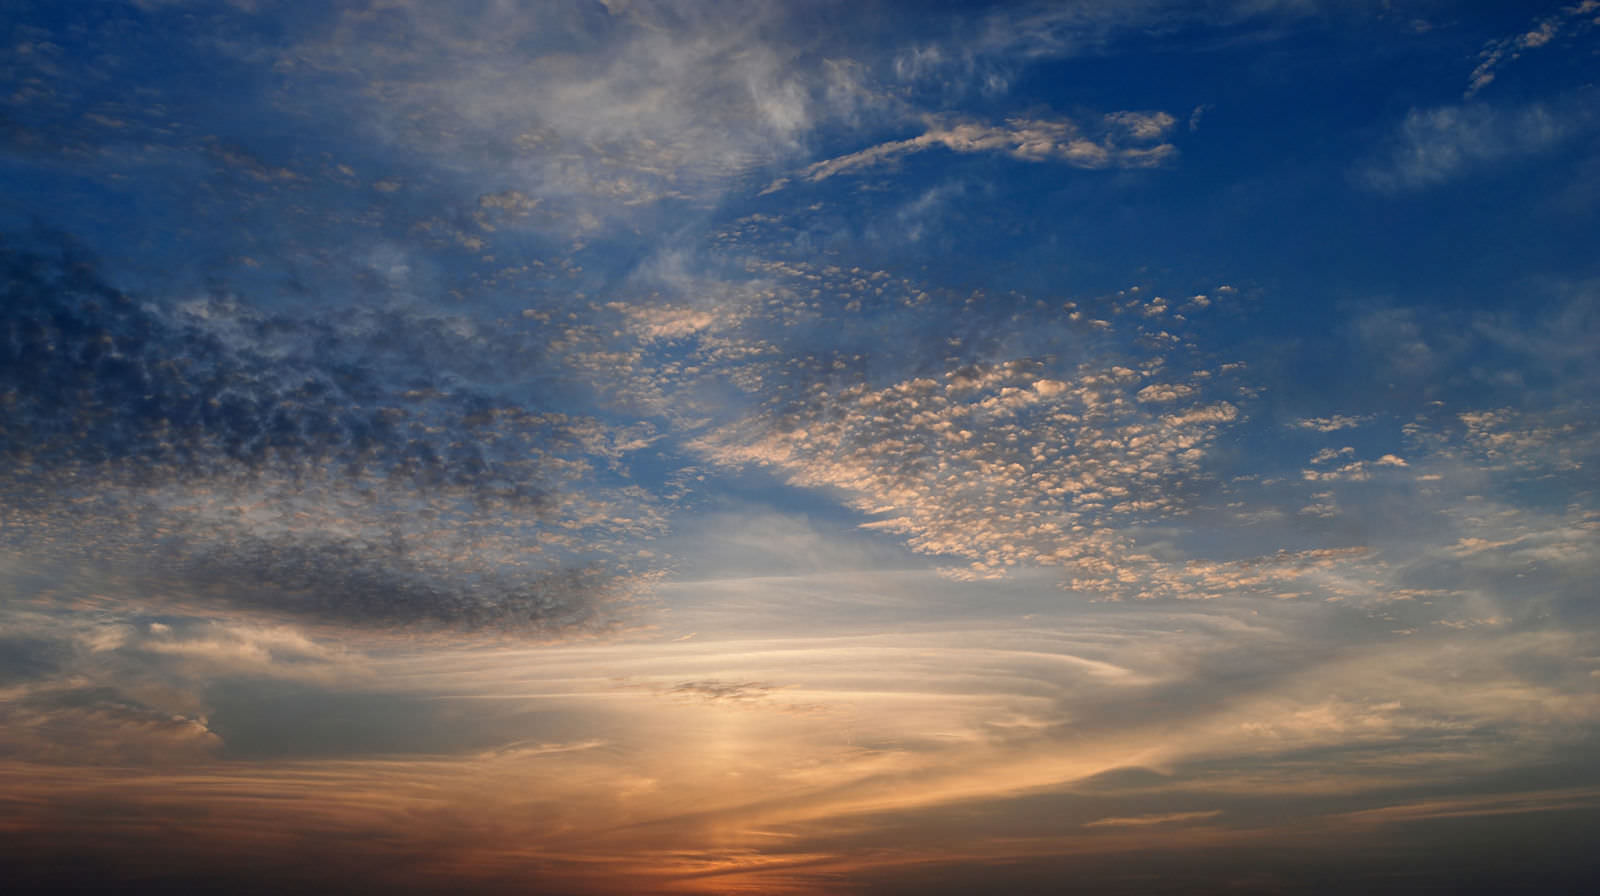 Earth Day: Show us the sky as you see it